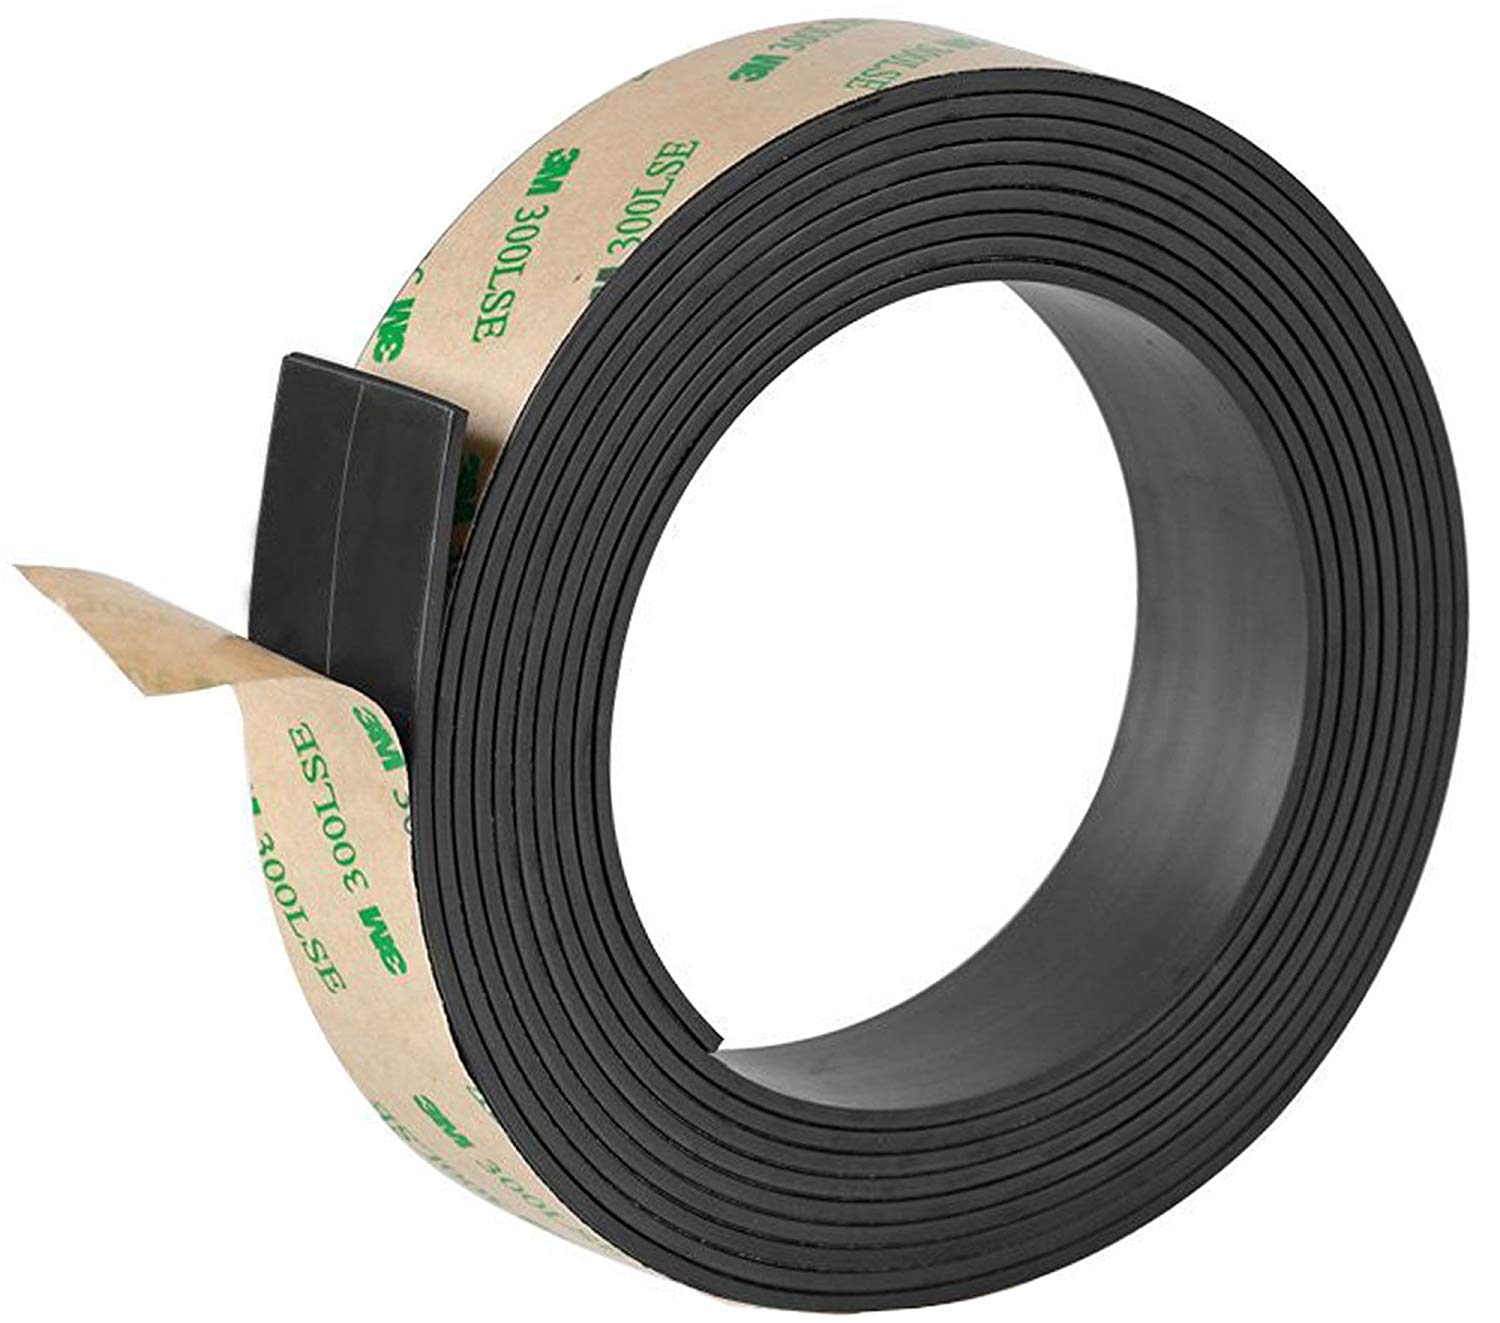 46e49a1fcd8 Get Quotations · Ilyever 1 inch x 10 Feet Strong Magnetic Tape Anisotropic Magnet  Strip with Premium Sticky Adhesive